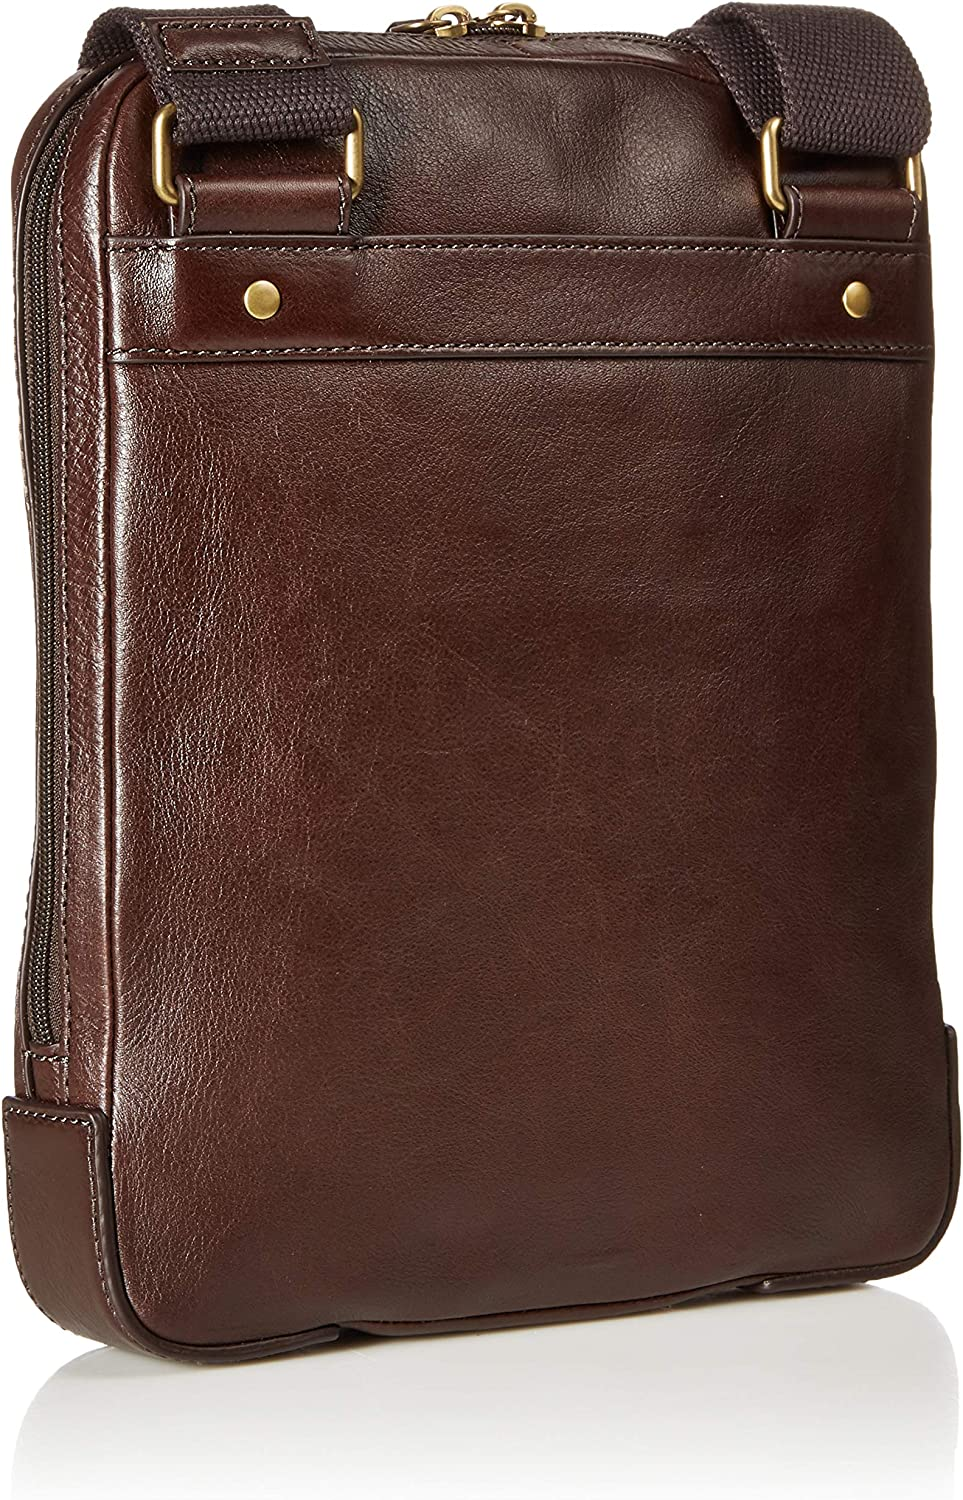 Fossil Men's Haskell Courier